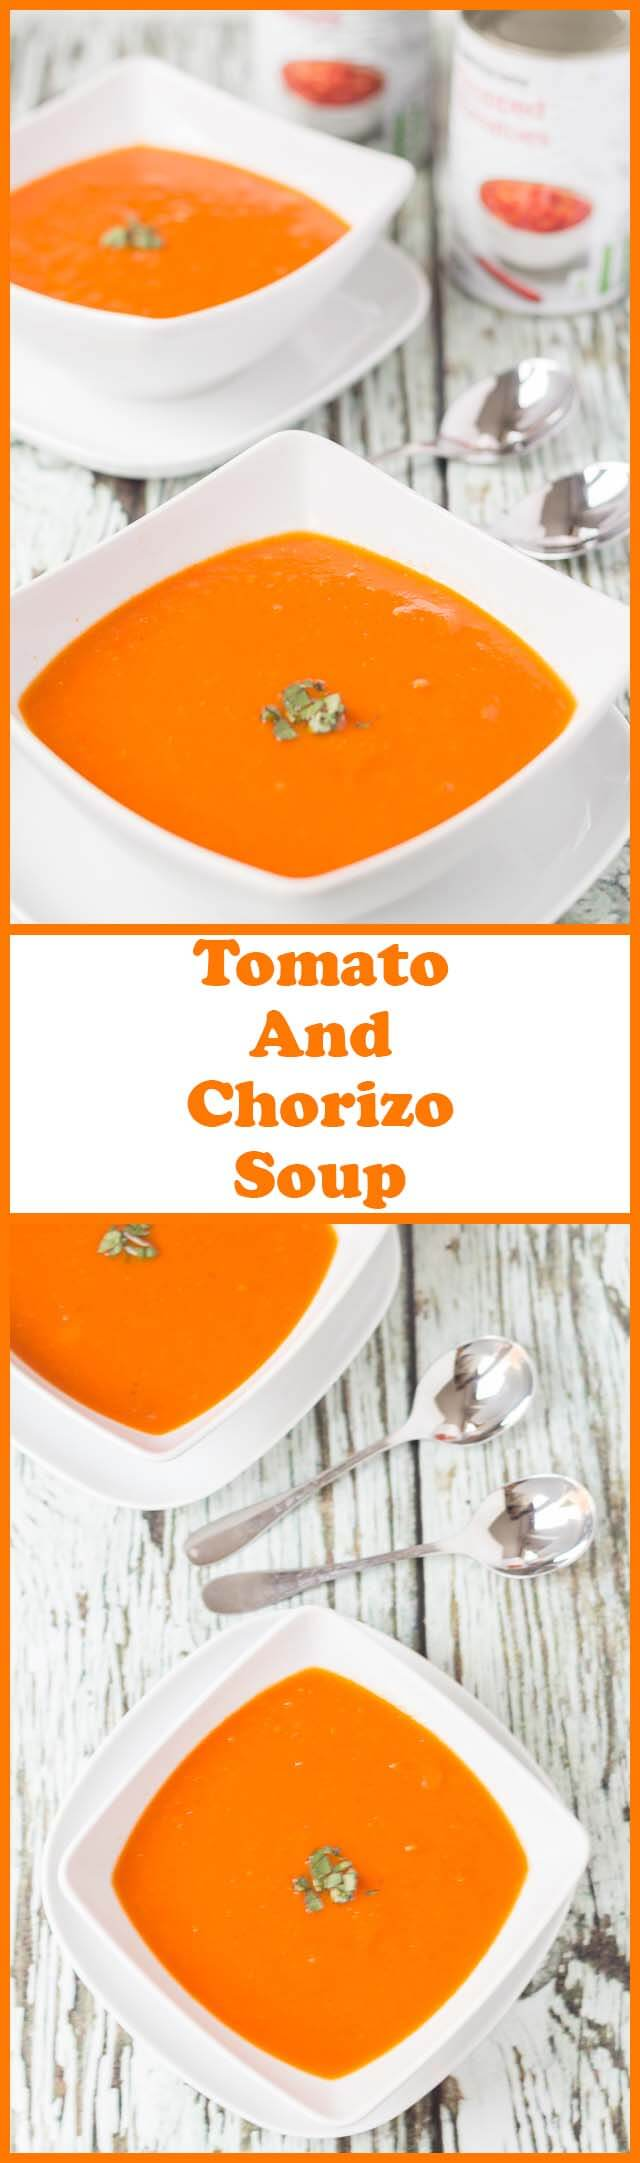 Tomato and chorizo soup is the perfect winter warmer. Vibrant and bursting with flavour, this easy low cost rustic soup is just what you need when it's cold outside!